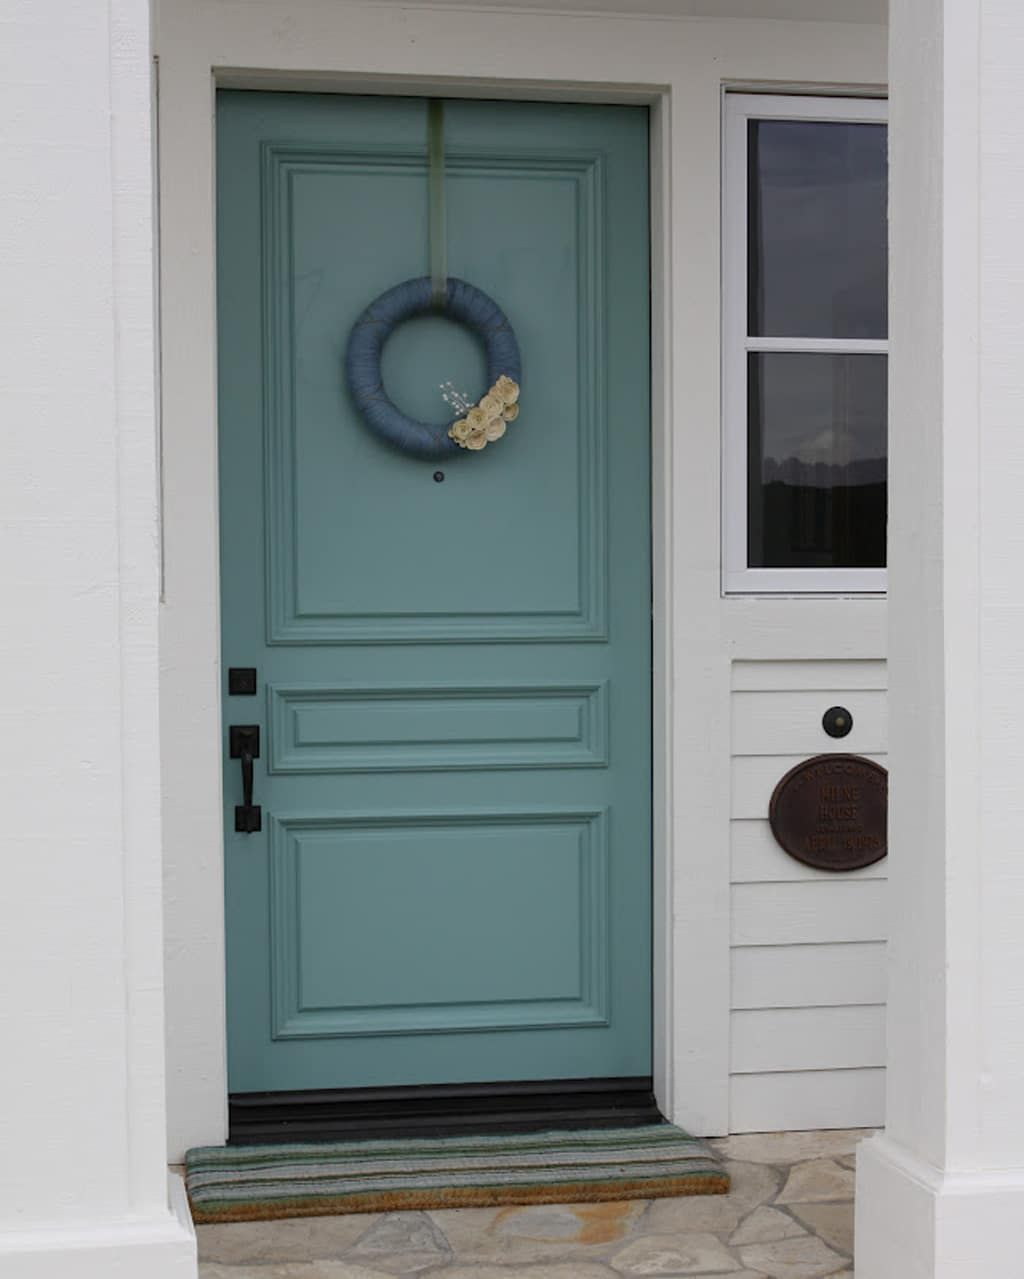 The 7 Best Front Door Colors for 2018 images